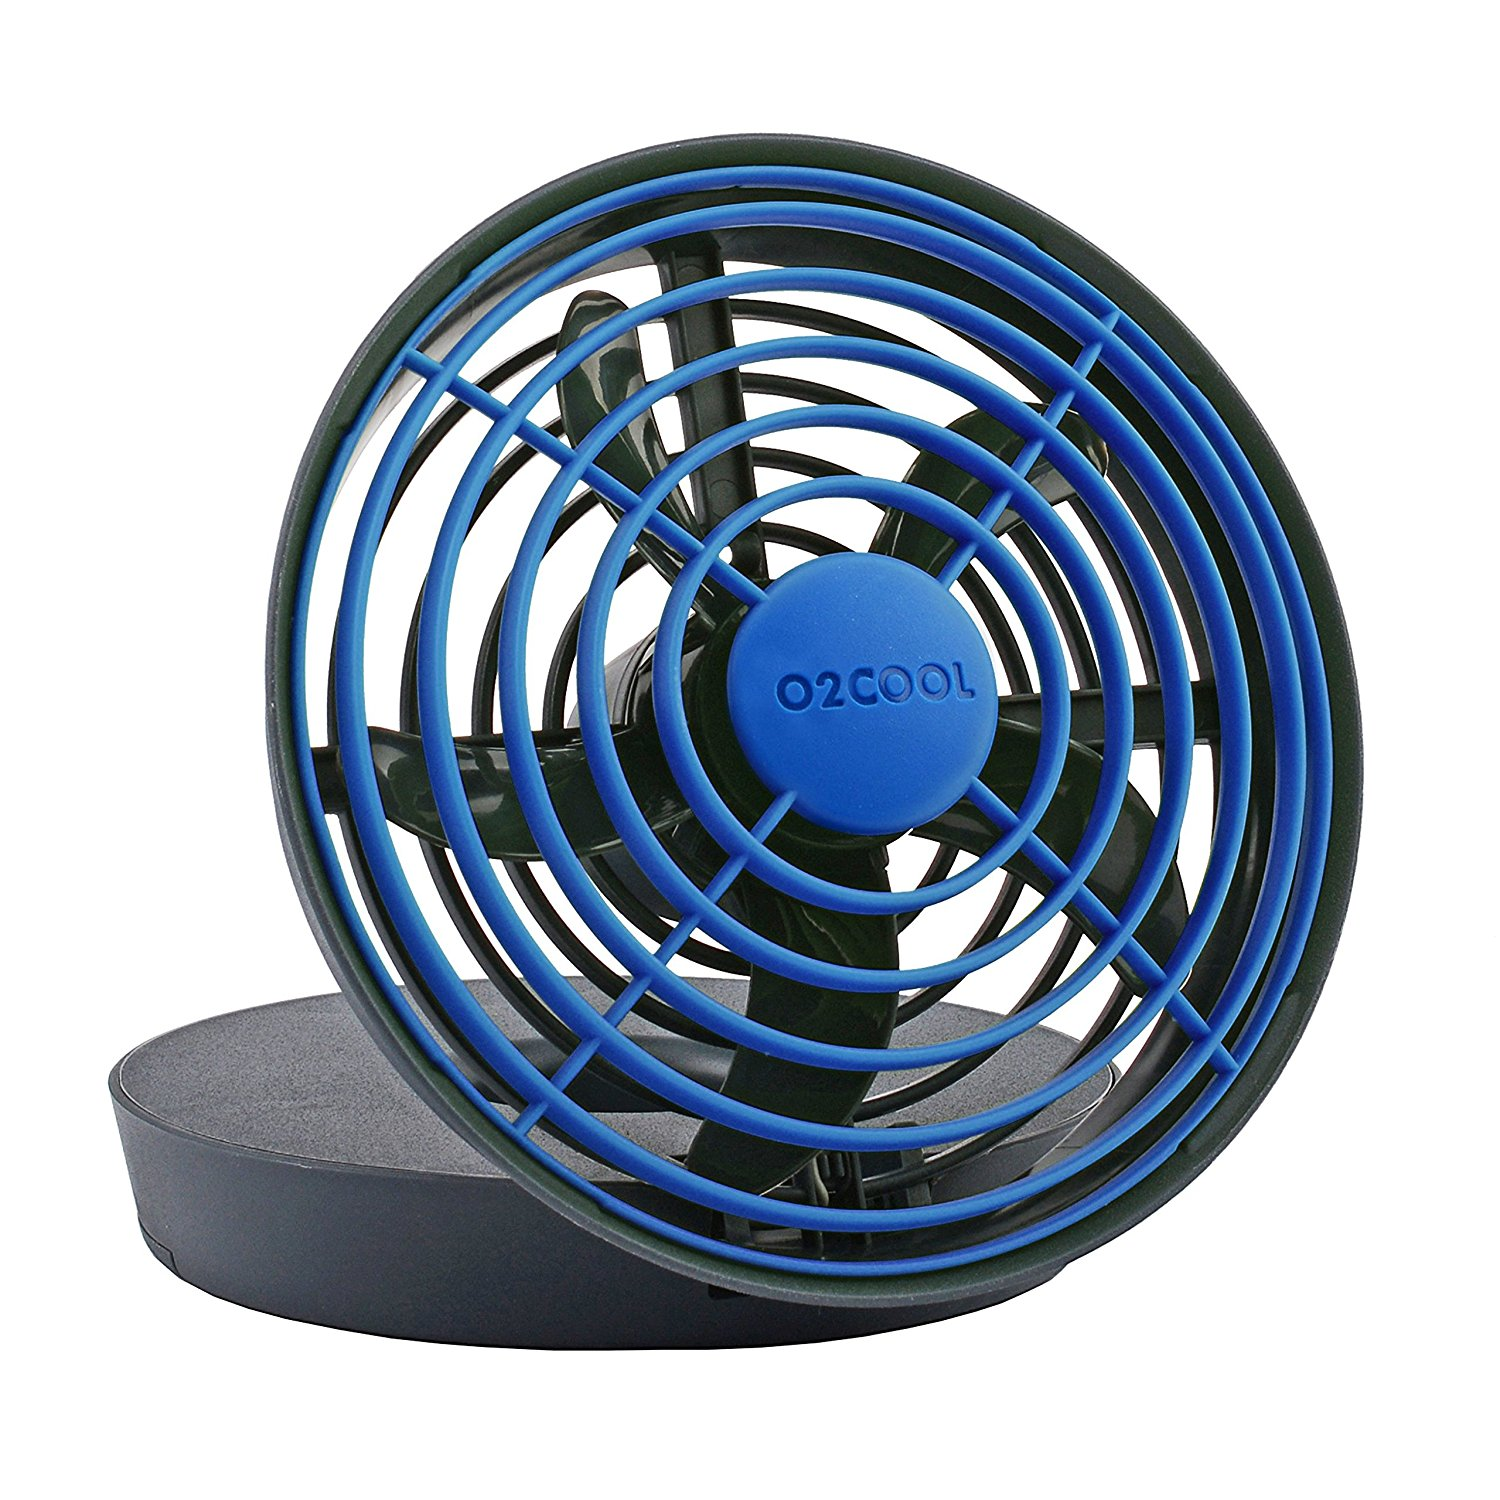 02 Cool Battery Operated Fan : Top best battery powered fans in buyer s guide